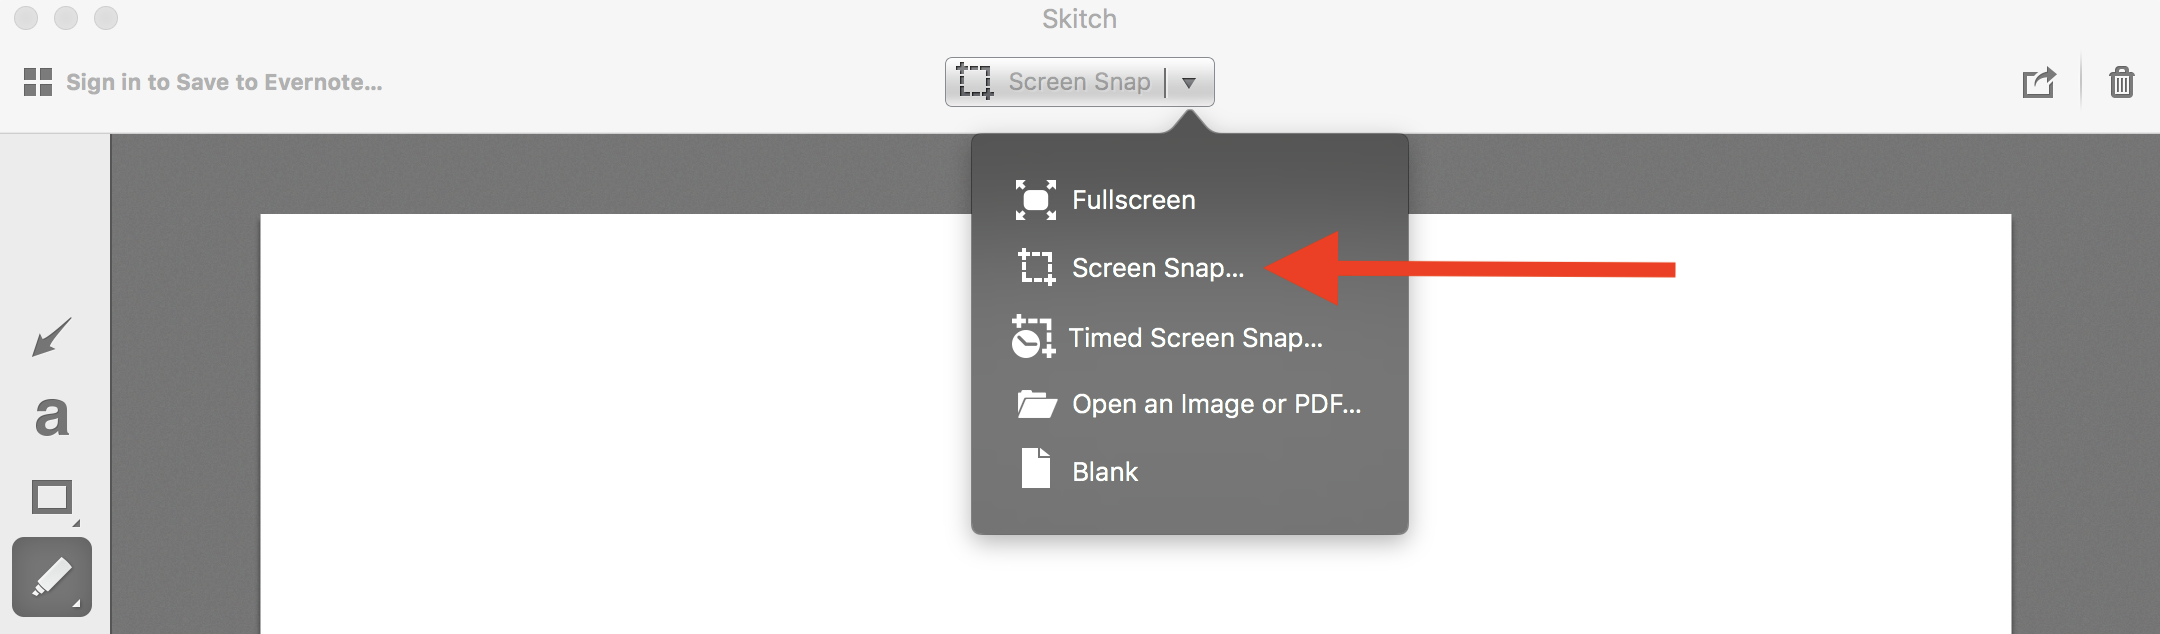 screen-snap-with-skitch